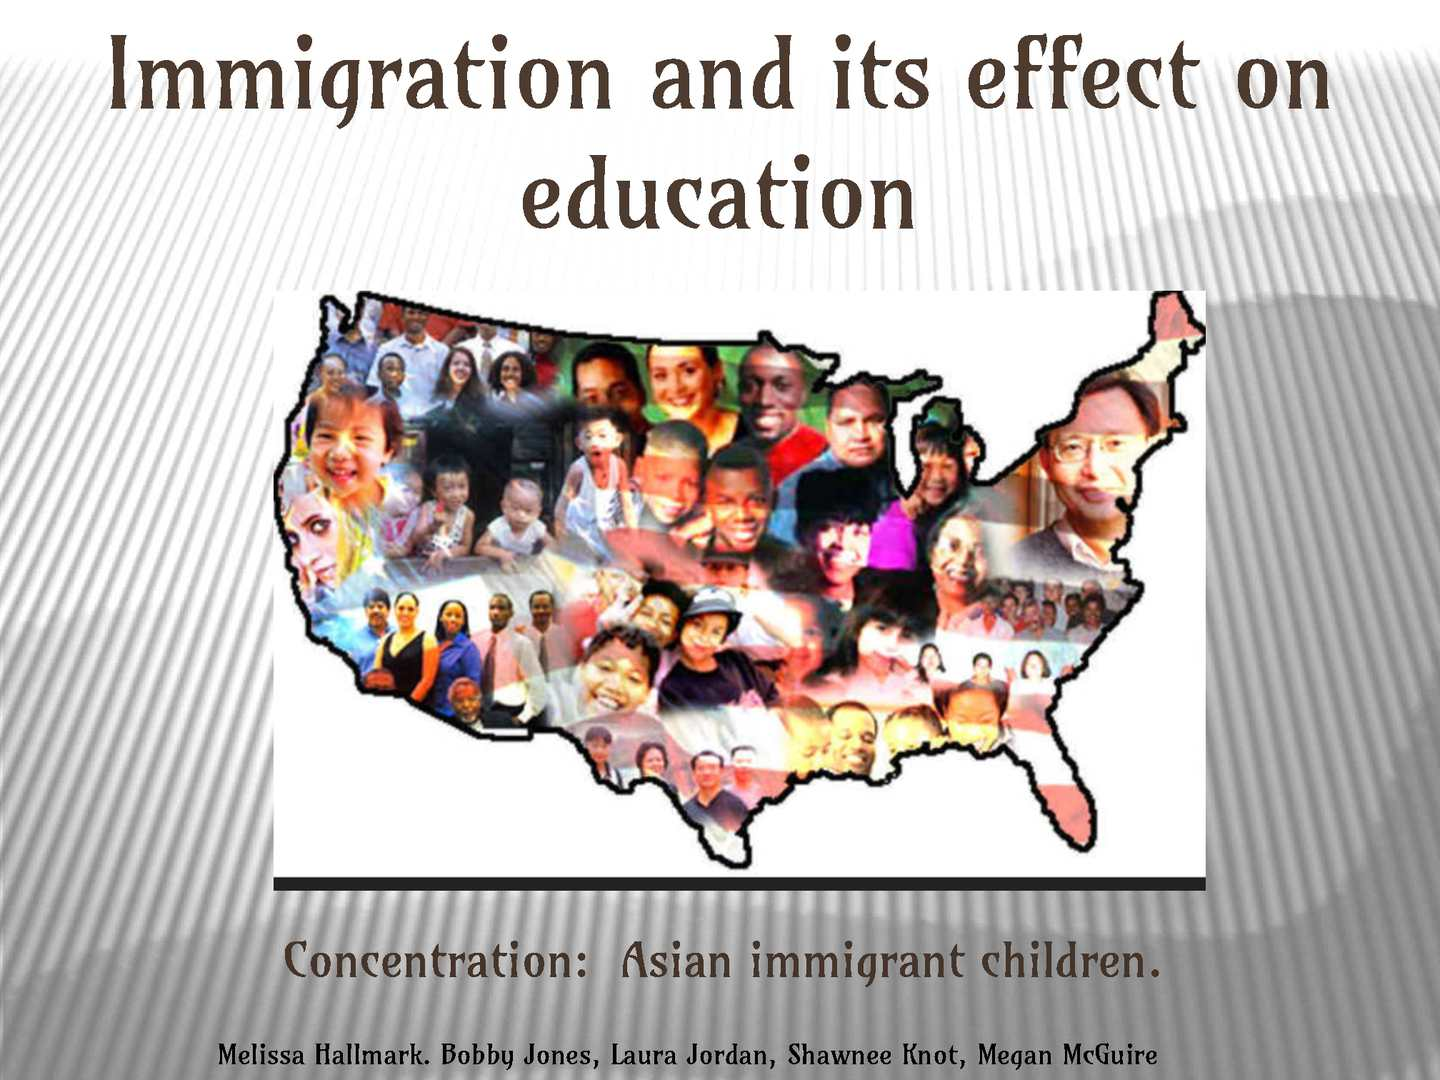 immigration and its effect on the In 1875, the nation passed its first immigration law, the page act of 1875 overall immigration has not had much effect on native wage inequality.